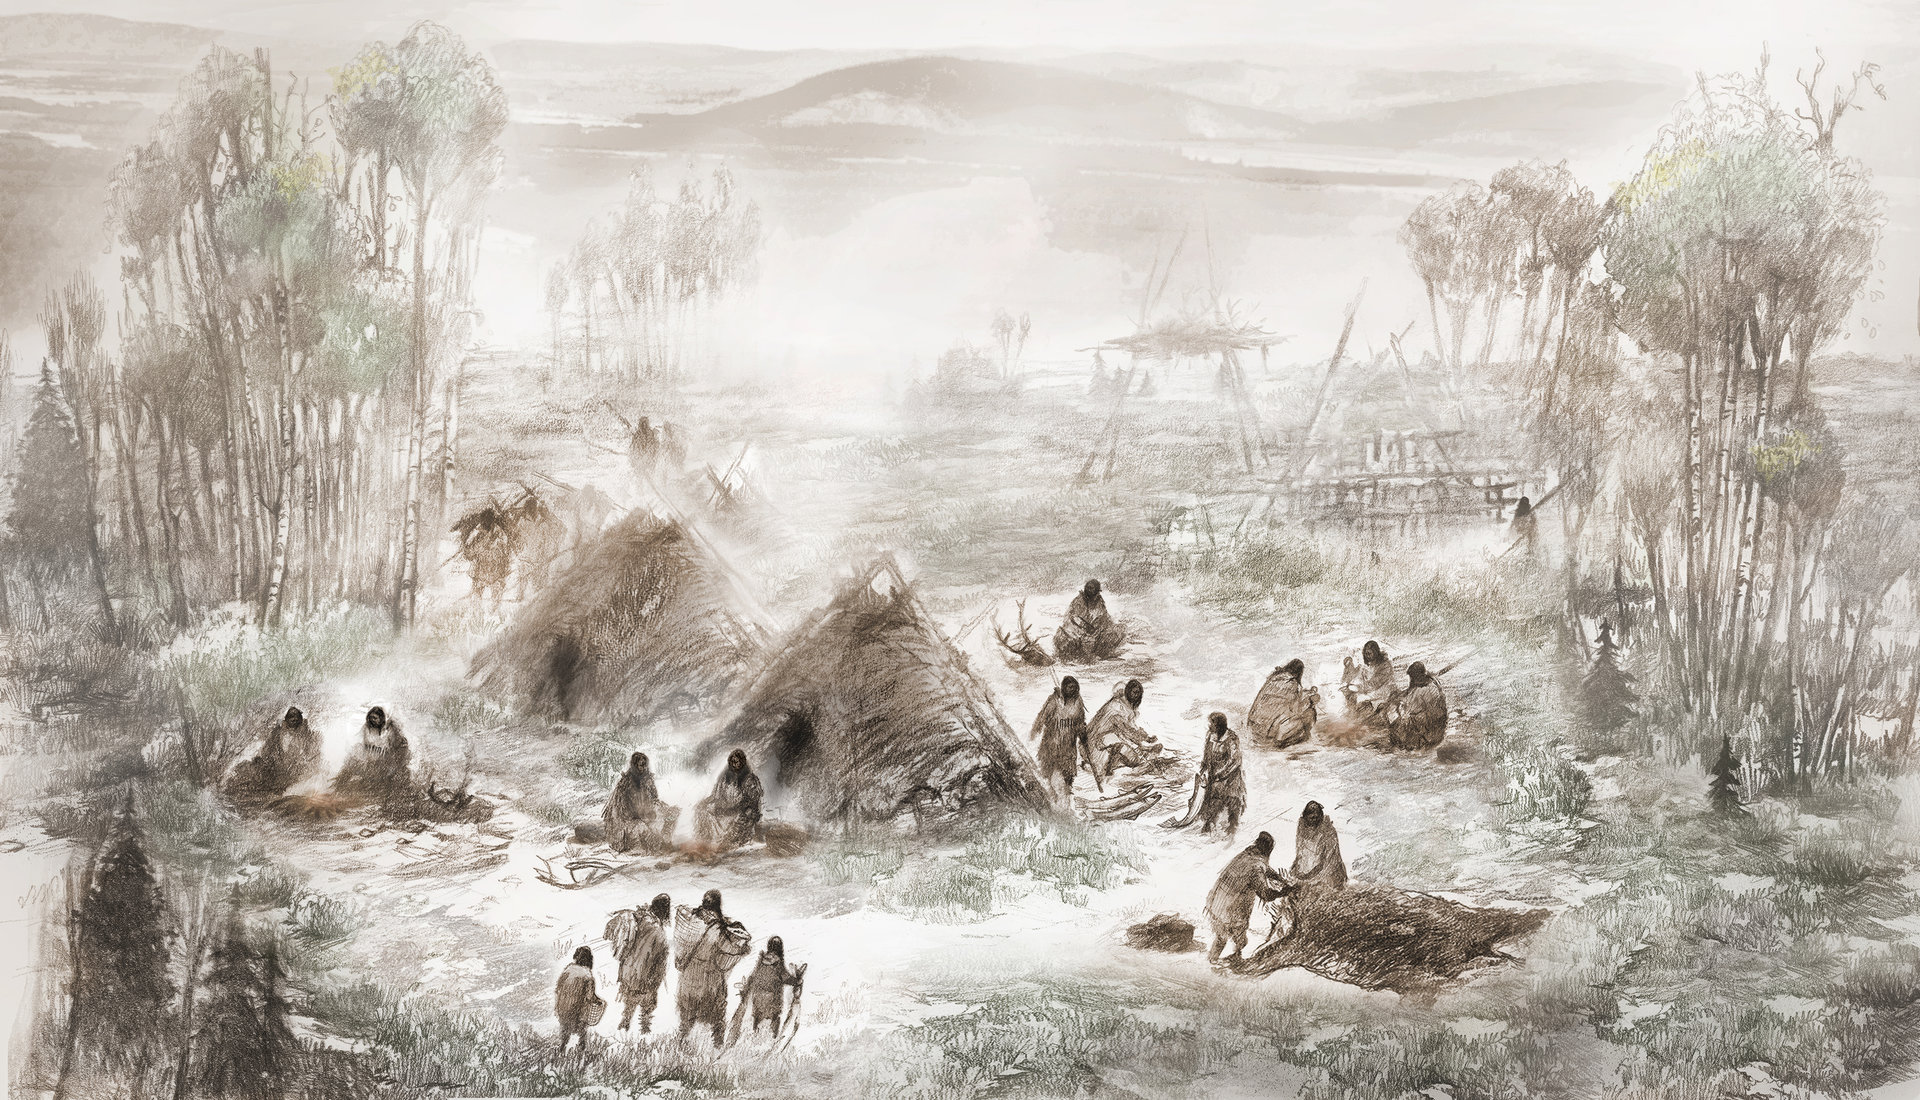 A Previously Unknown Group of Ancient Native Americans Was Just Revealed